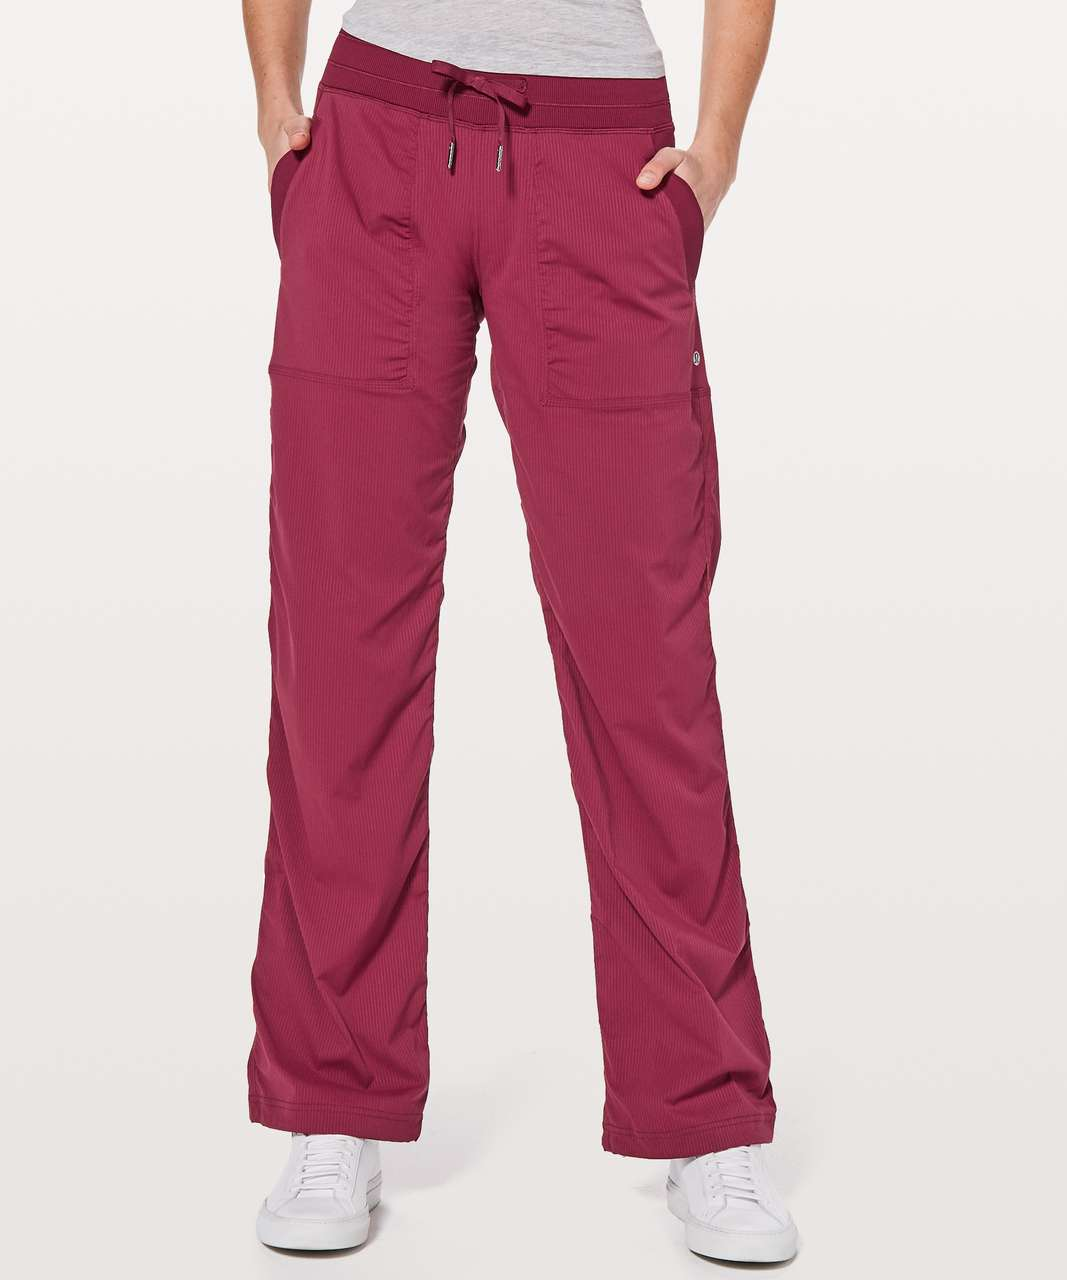 "Lululemon Dance Studio Pant III (Regular) *Unlined 32"" - Ruby Wine"